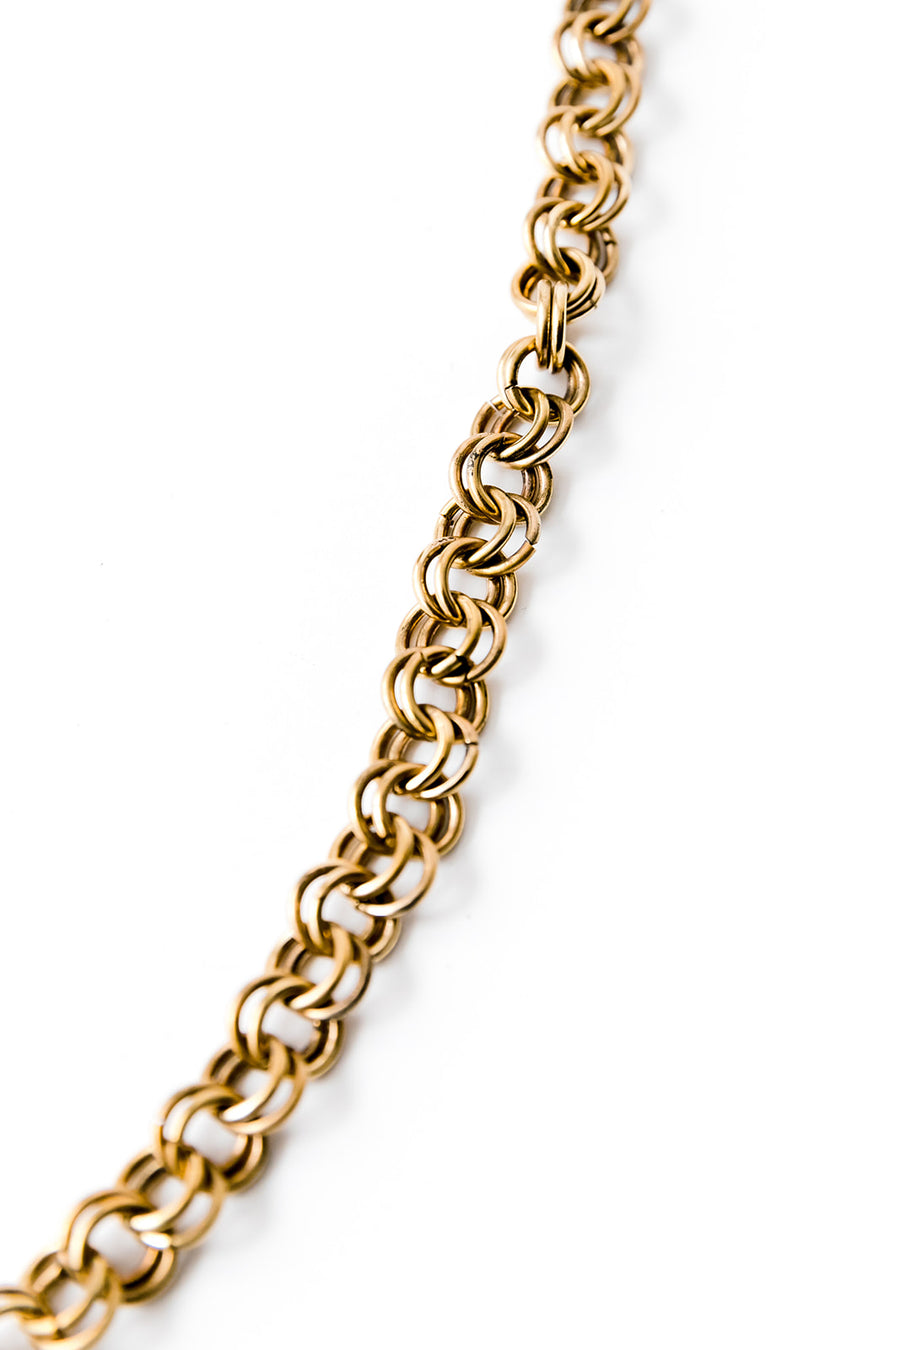 Riley chainlink necklace